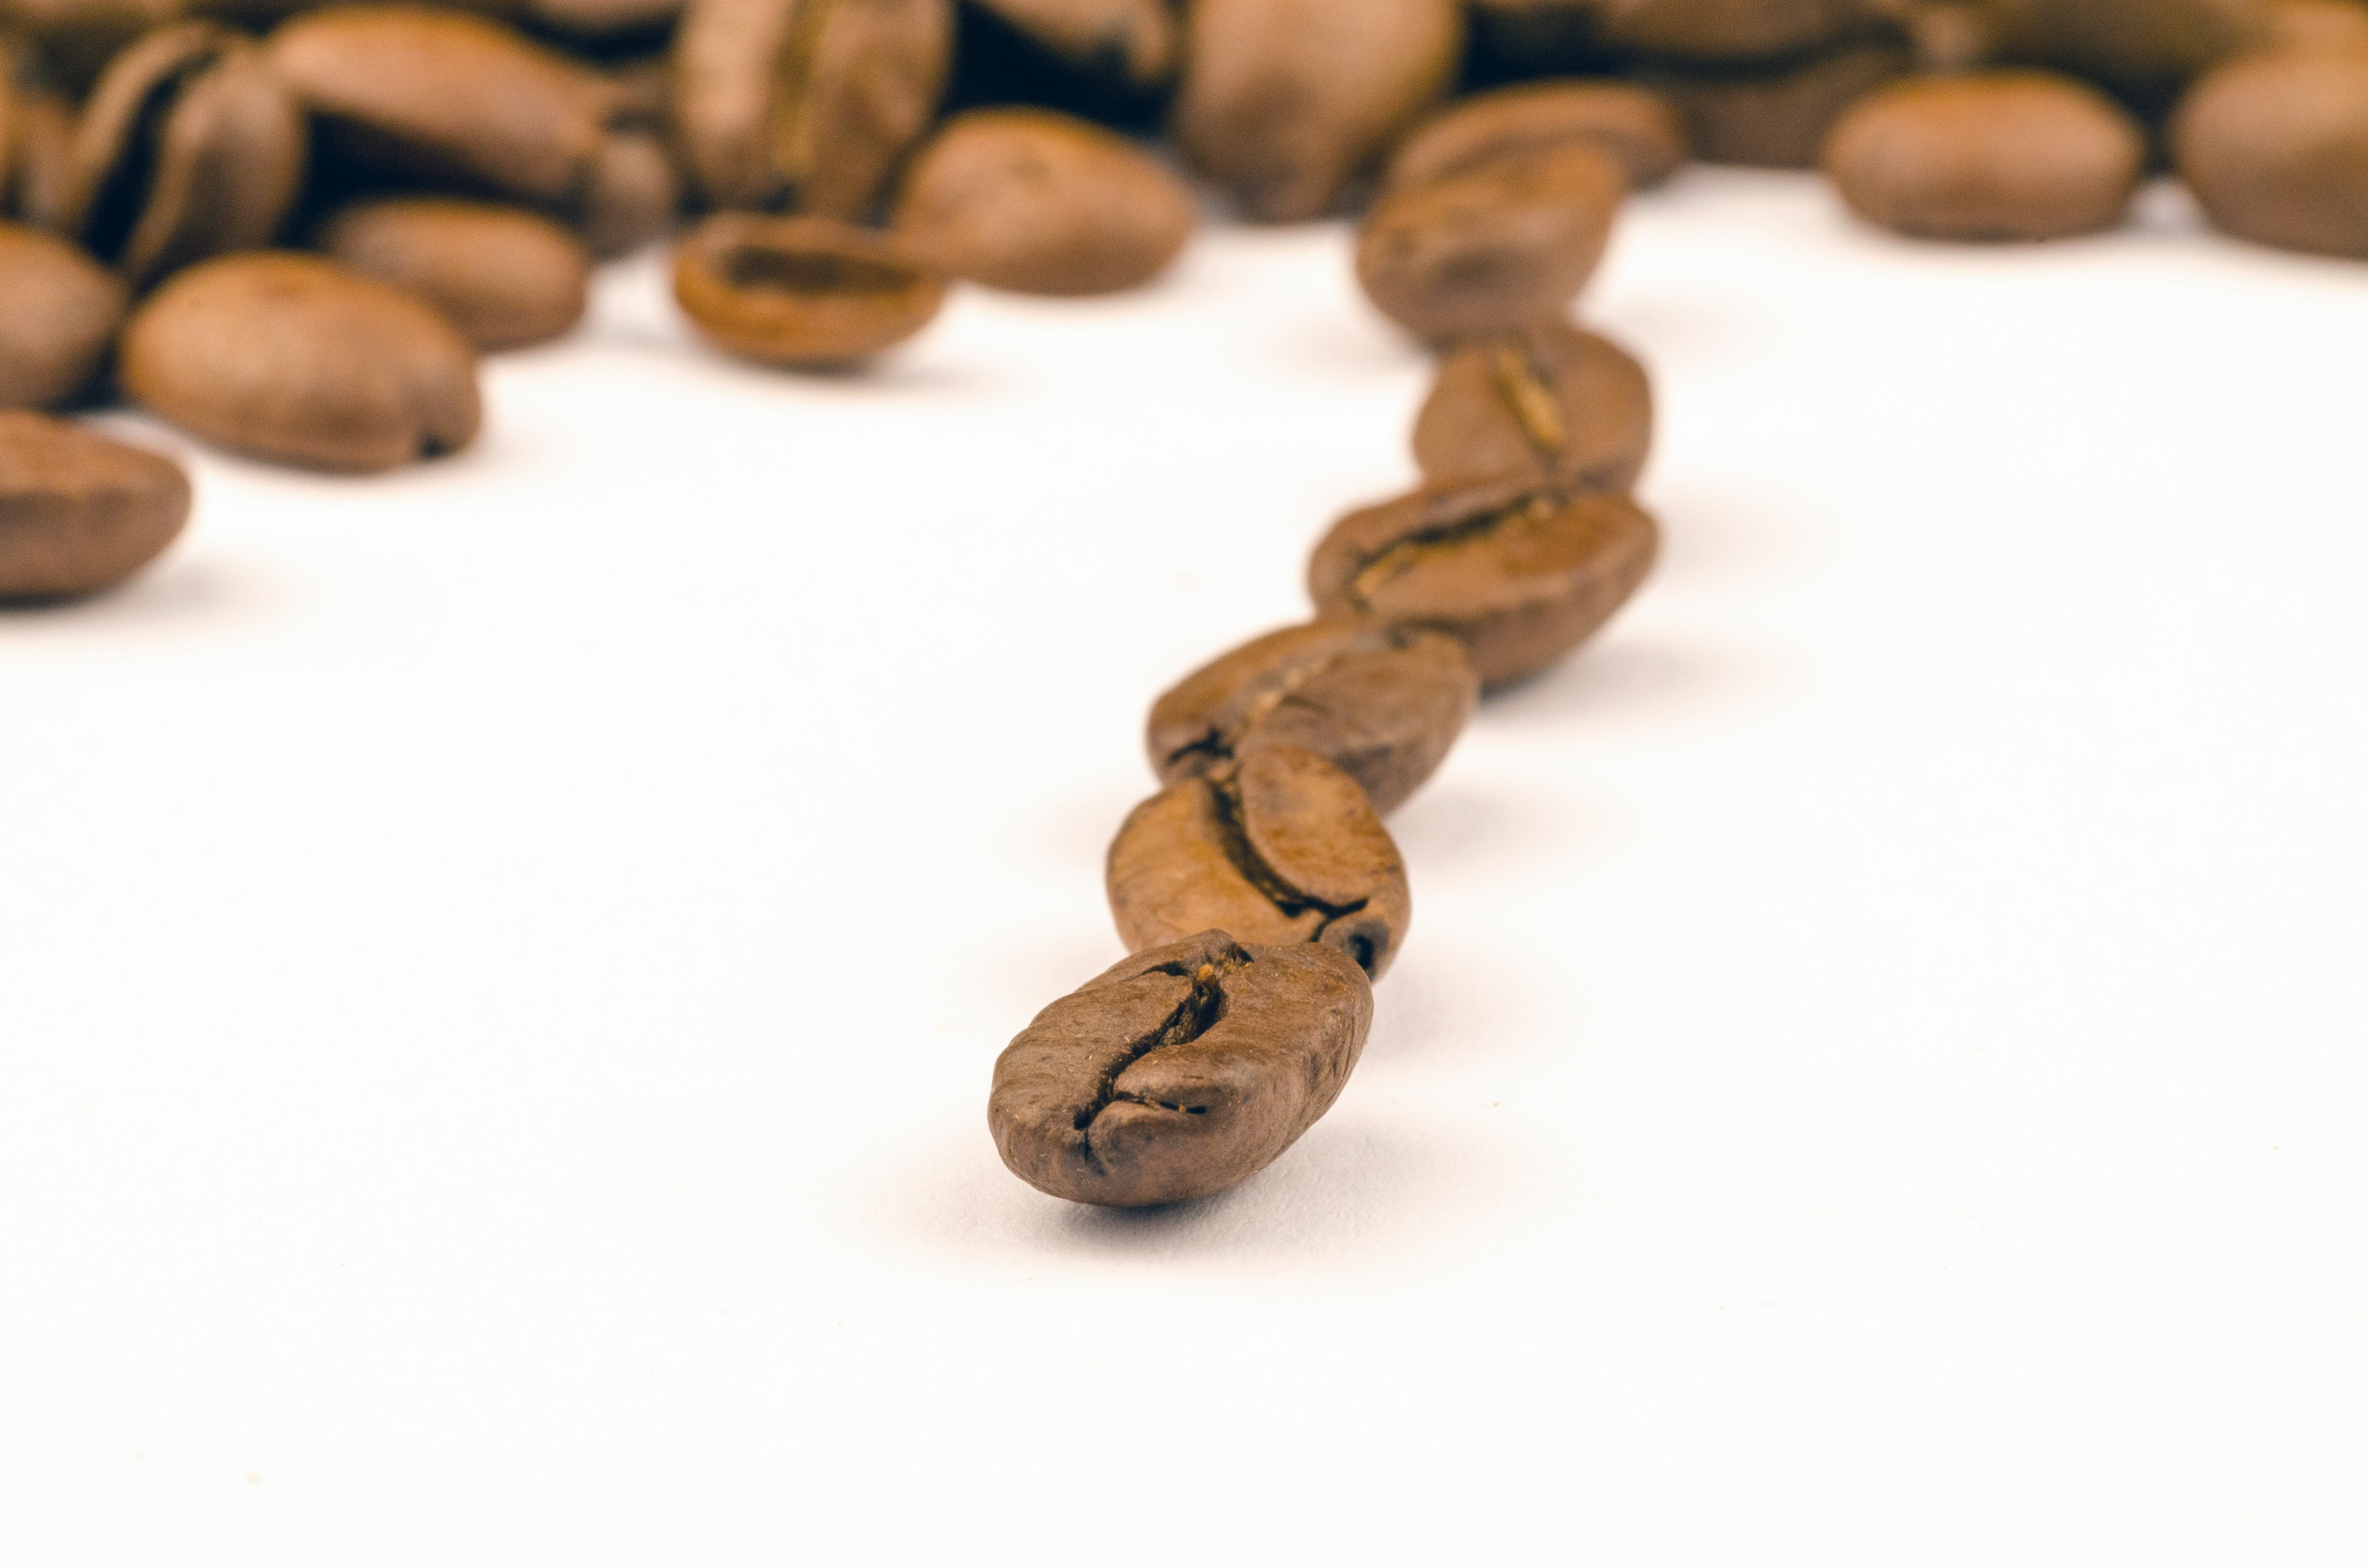 Pile of Coffee Bean